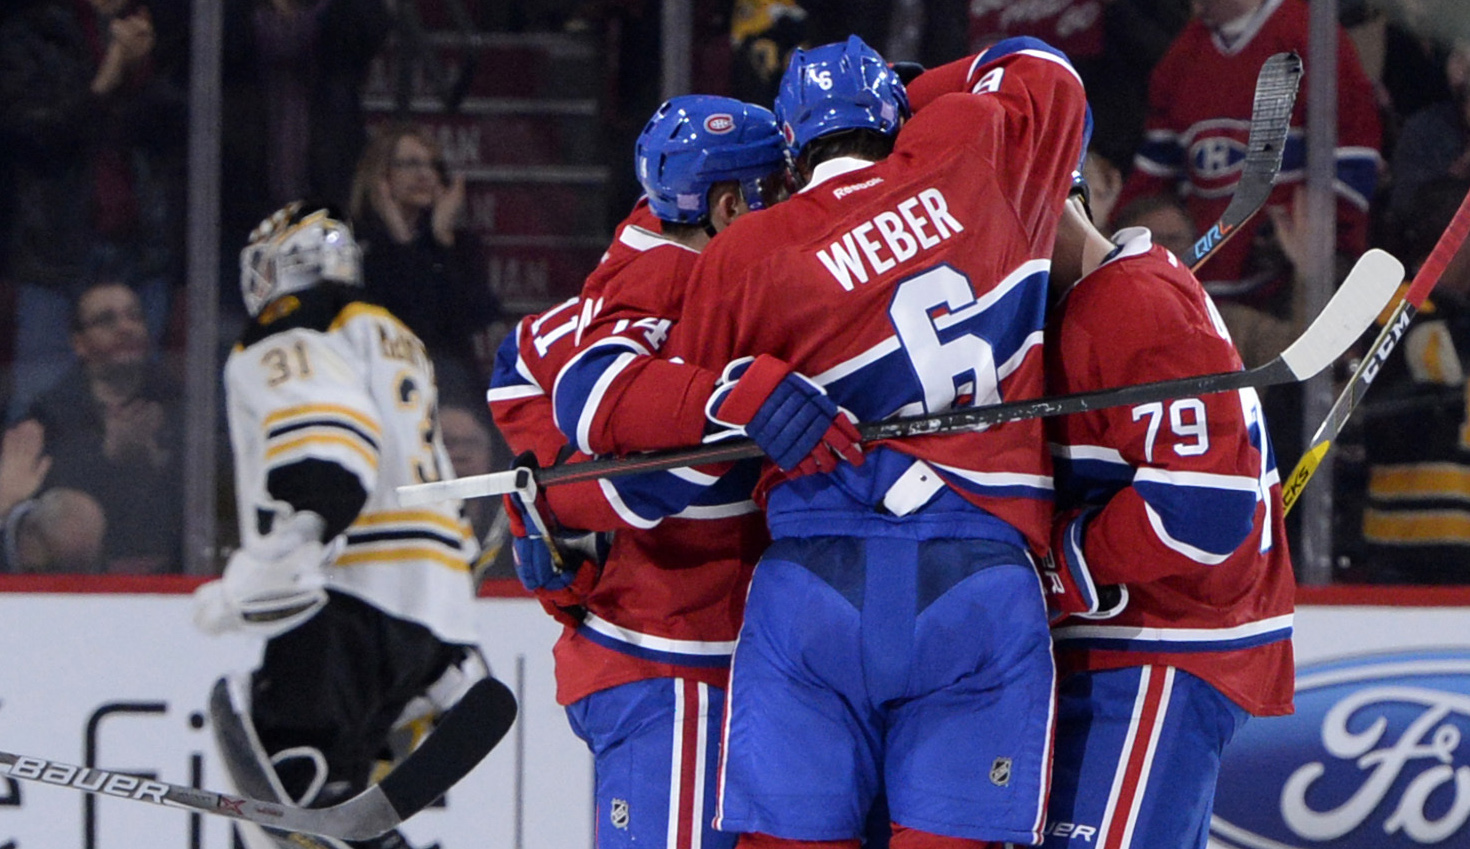 Nov 8, 2016; Montreal, Quebec, CAN; Montreal Canadiens defenseman Shea Weber (6) is congratulated by teammates after scoring a goal against the Boston Bruins during the second period at the Bell Centre. Mandatory Credit: Eric Bolte-USA TODAY Sports